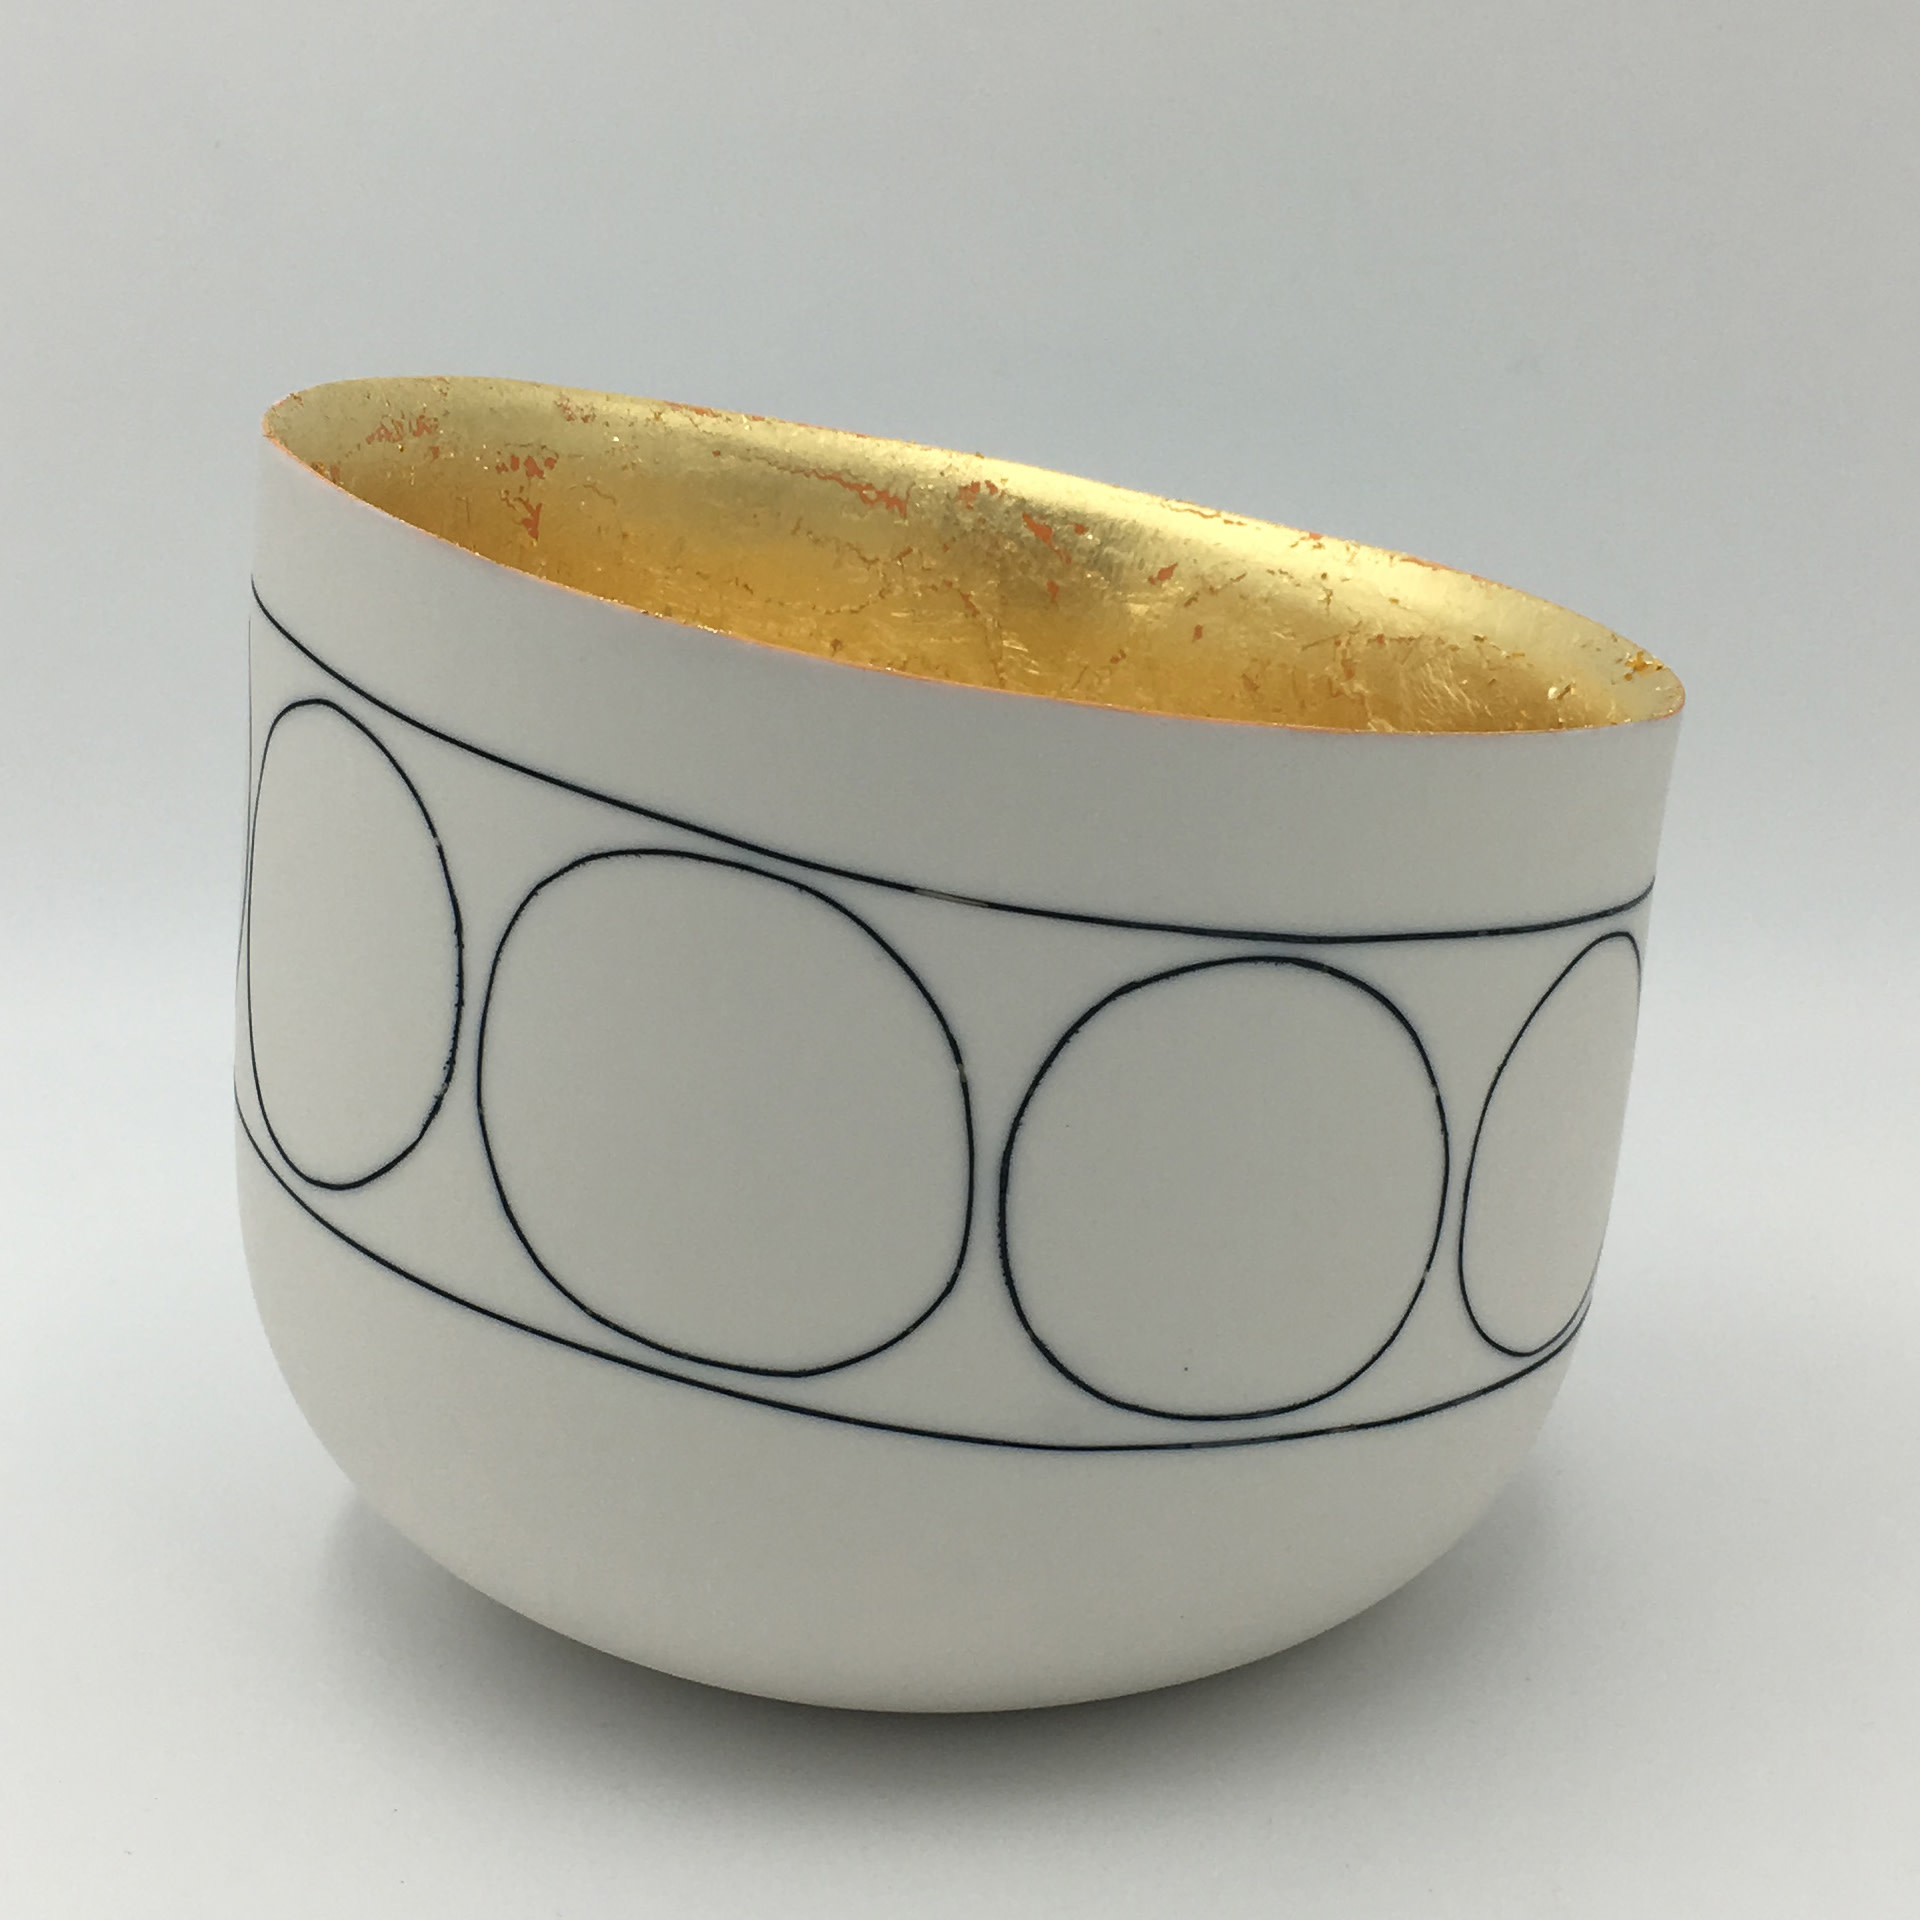 "<span class=""link fancybox-details-link""><a href=""/artists/195-lara-scobie/works/6517-lara-scobie-tilted-circle-bowl-with-23ct-gold-interior-2019/"">View Detail Page</a></span><div class=""artist""><strong>Lara Scobie</strong></div> <div class=""title""><em>Tilted Circle Bowl with 23ct Gold Interior</em>, 2019</div> <div class=""medium"">Porcelain</div><div class=""price"">£540.00</div><div class=""copyright_line"">Own Art: £54 x 10 Months, 0% APR</div>"